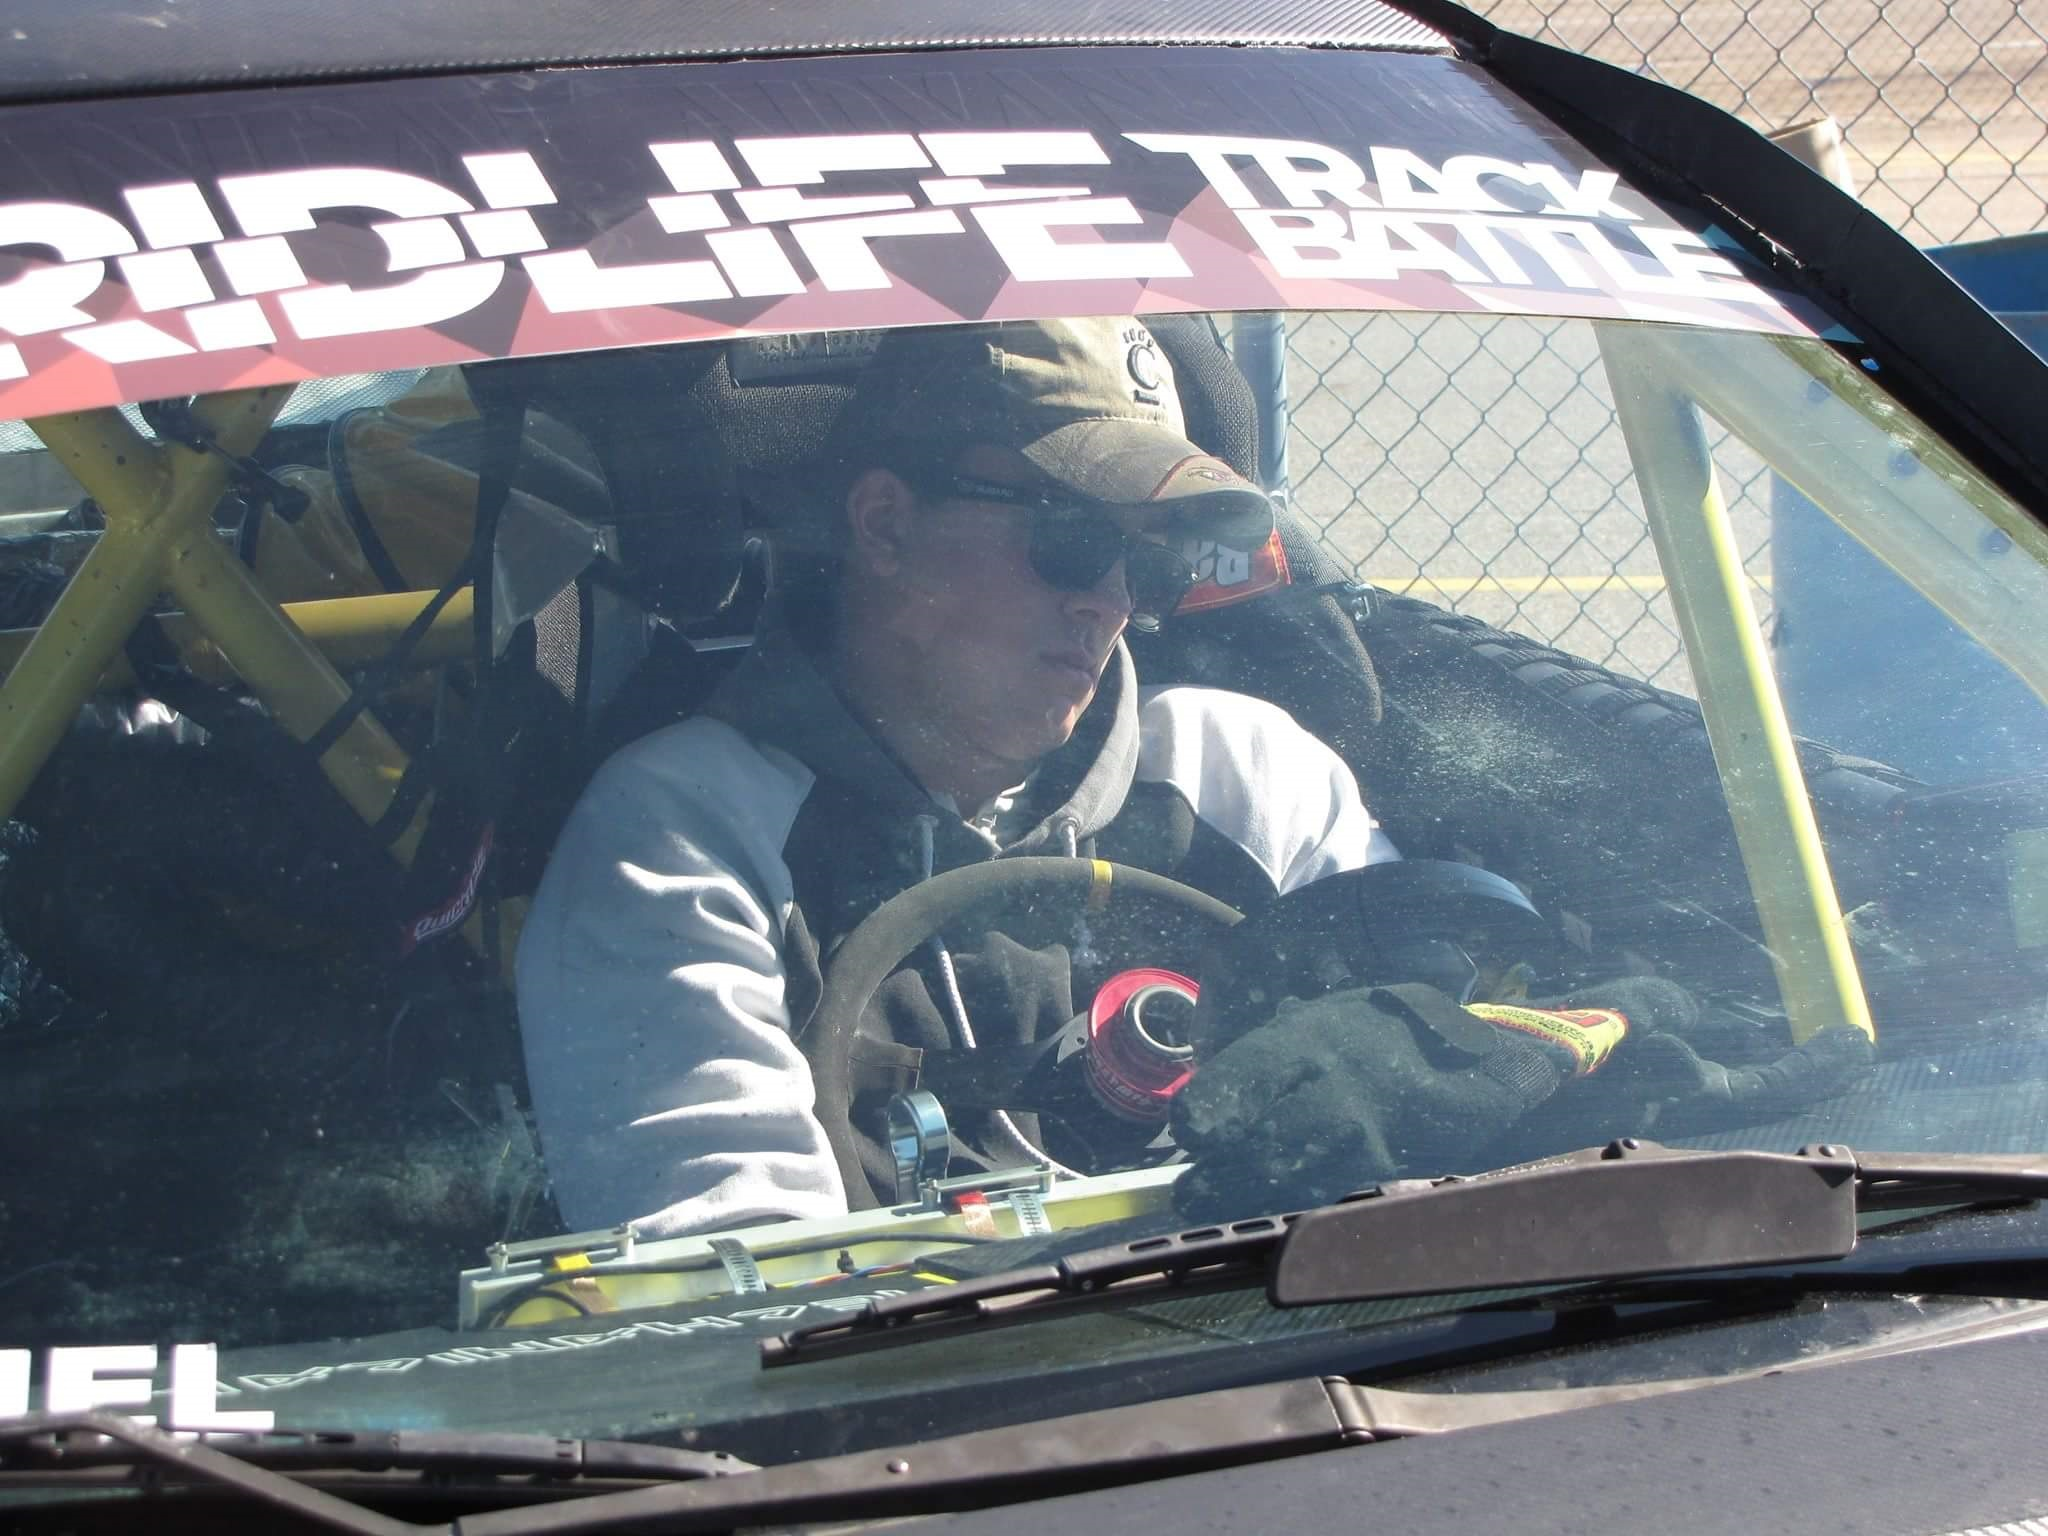 Grant getting steering wheel cuddles from his exhaustion as pit crew